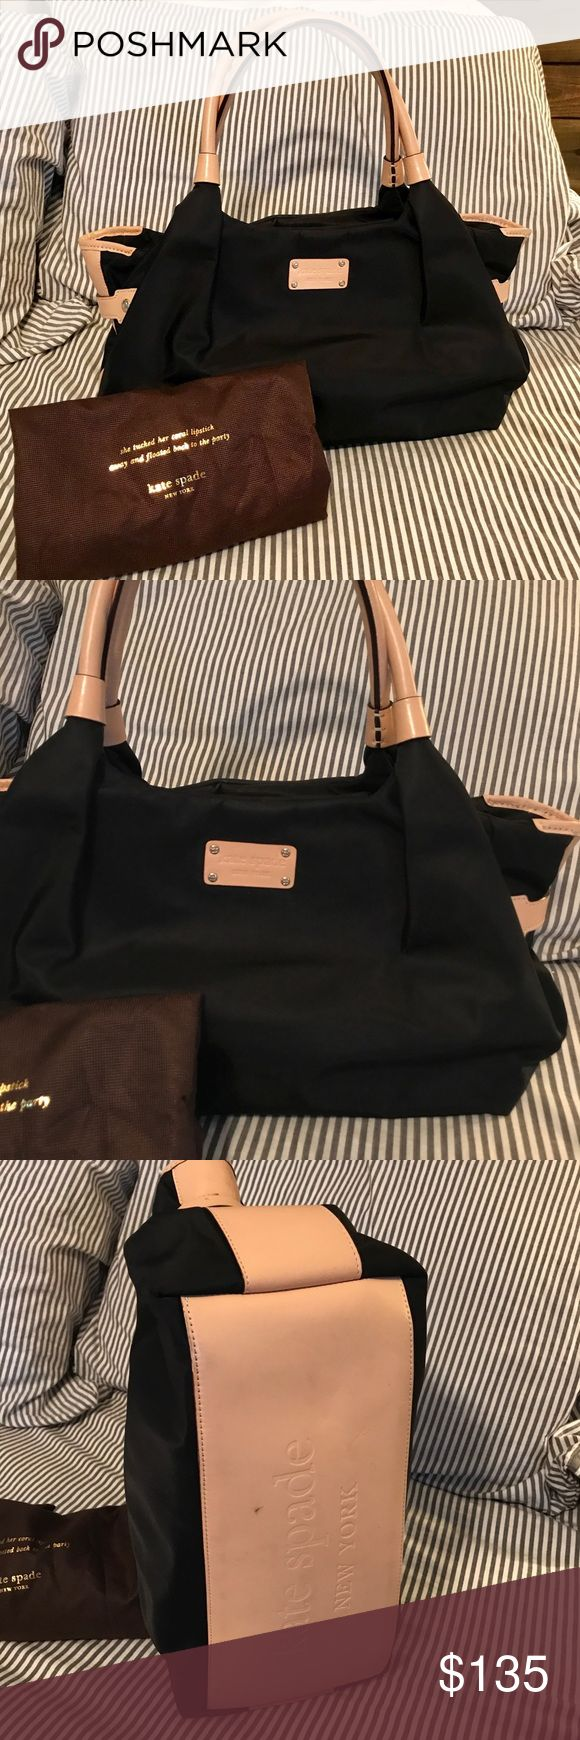 """EUC AUTHENTIC KATE SPADE Shoulder Bag I love this neutral, black Nylon bag. It won't stain or start to look """"shabby"""". I have taken pictures where slight signs of wear are shown. This bag will fit everything! I used a tote organizer with it. It has to inner pockets and one zipper pocket. Comes with a dust bag. I have high ratings, you won't regret getting this bag!   Dimensions: H: 10"""" W: 6"""" L: 14""""  Feel free to ask questions about this great bag! kate spade Bags Shoulder Bags"""